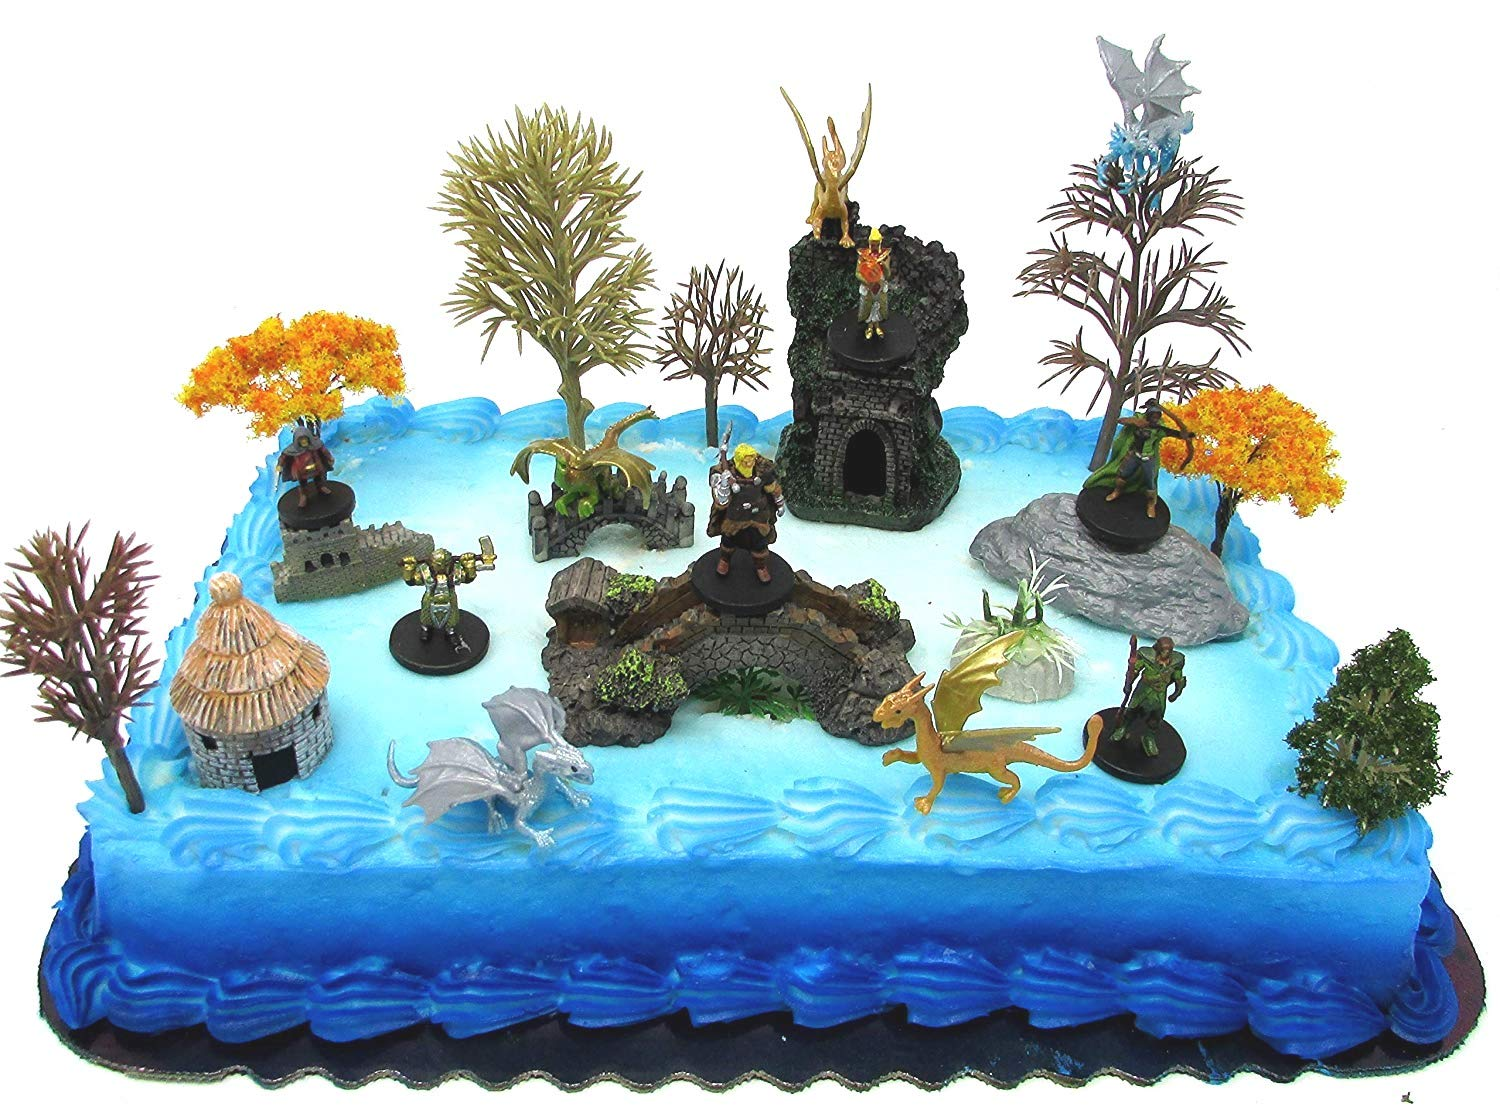 Dungeons & Dragons Deluxe Birthday Cake Topper Set Featuring Dungeons and Dragons Miniature Figures and Decorative Themed Accessories